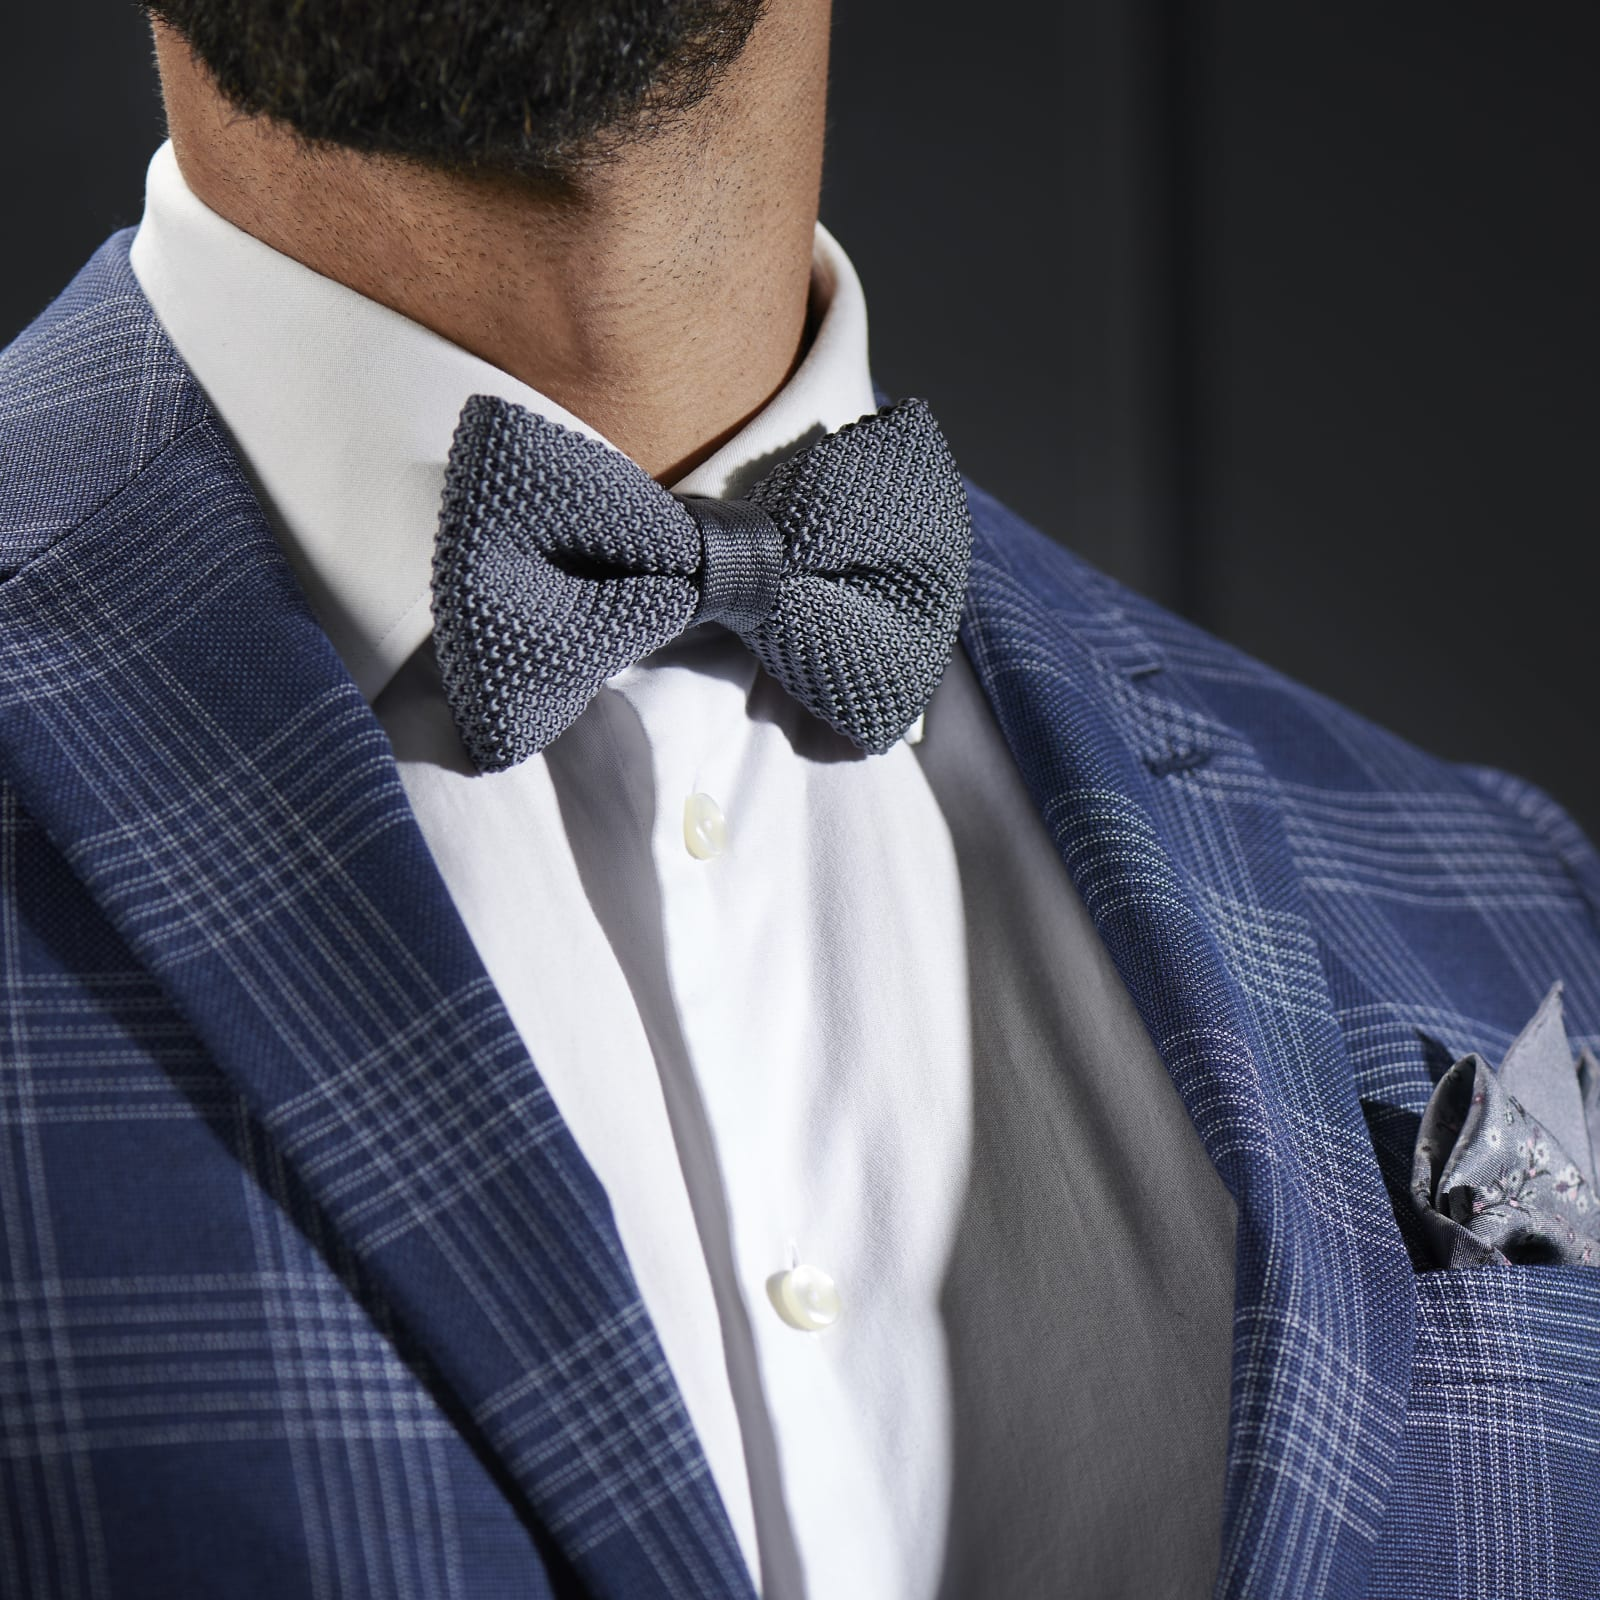 DARK GREY KNITTED BOW TIES